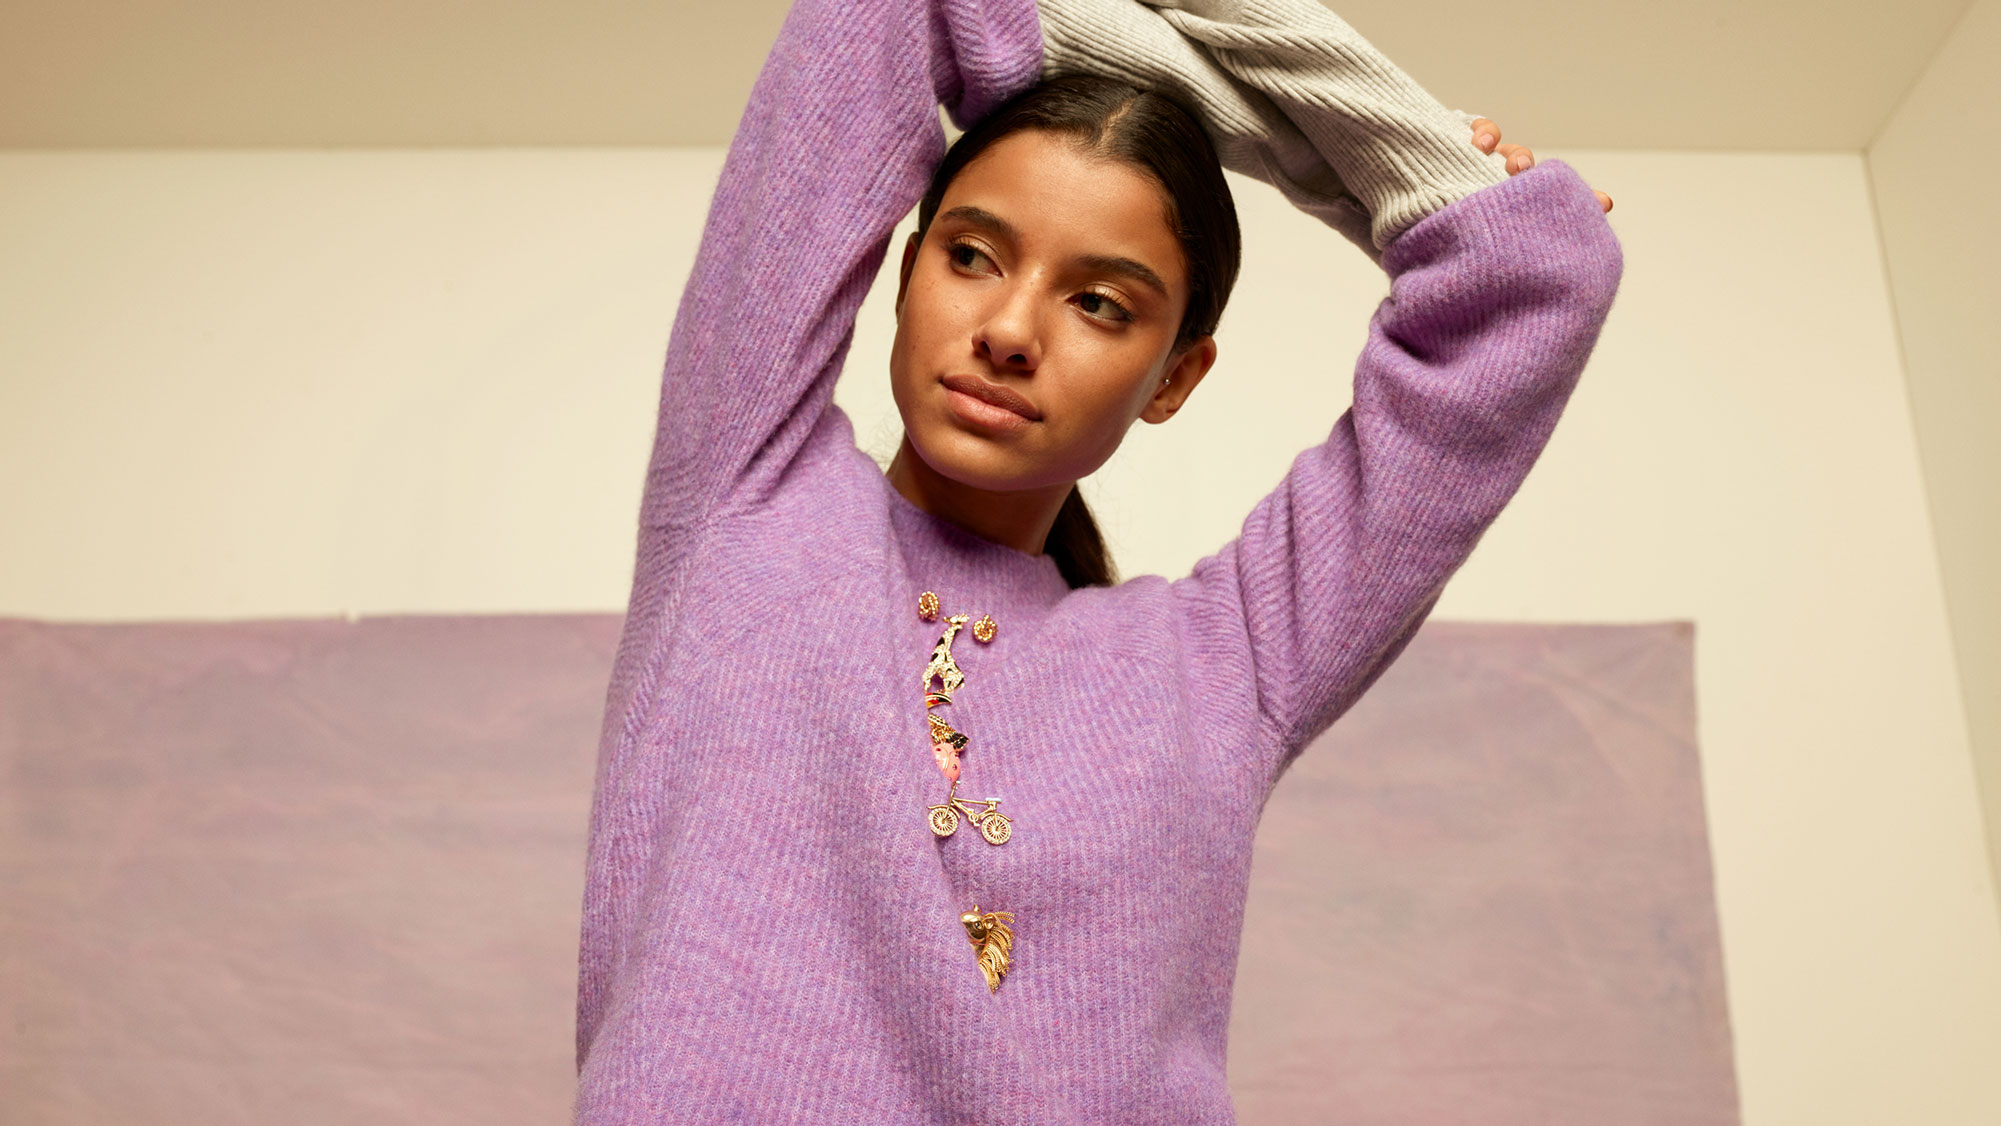 Woman Modeling a Sweater